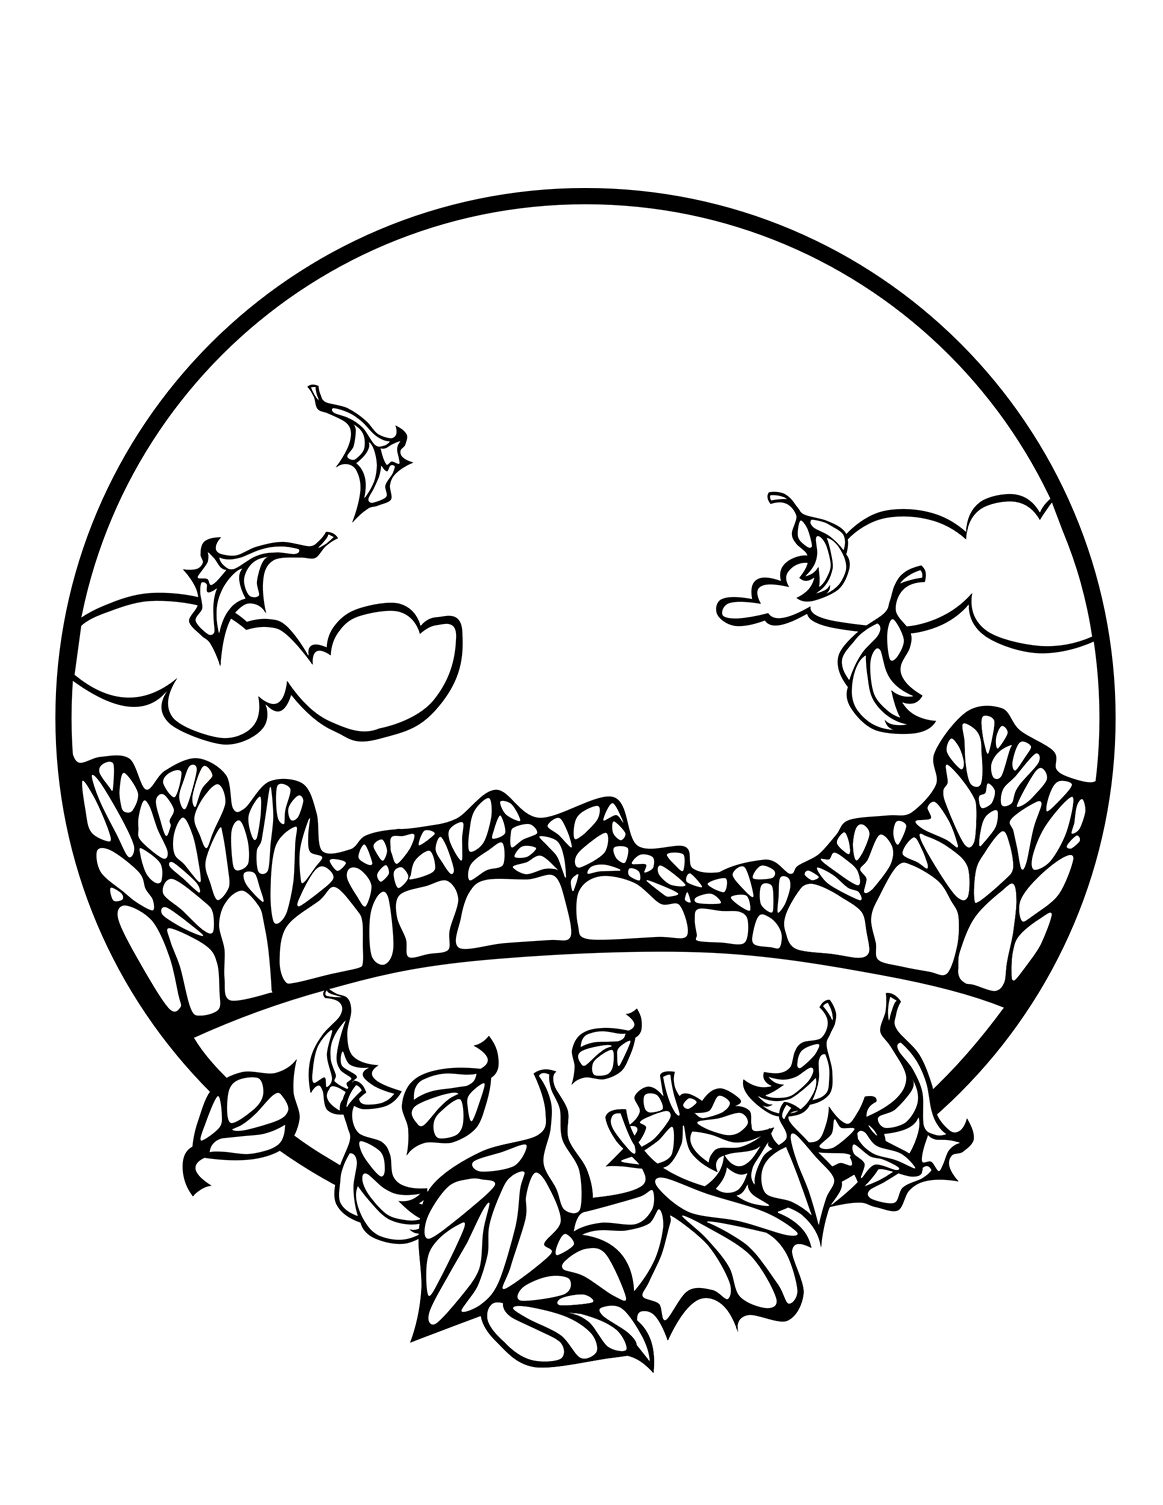 color sheets for fall fall coloring pages for kids and adults 101 activity fall color for sheets